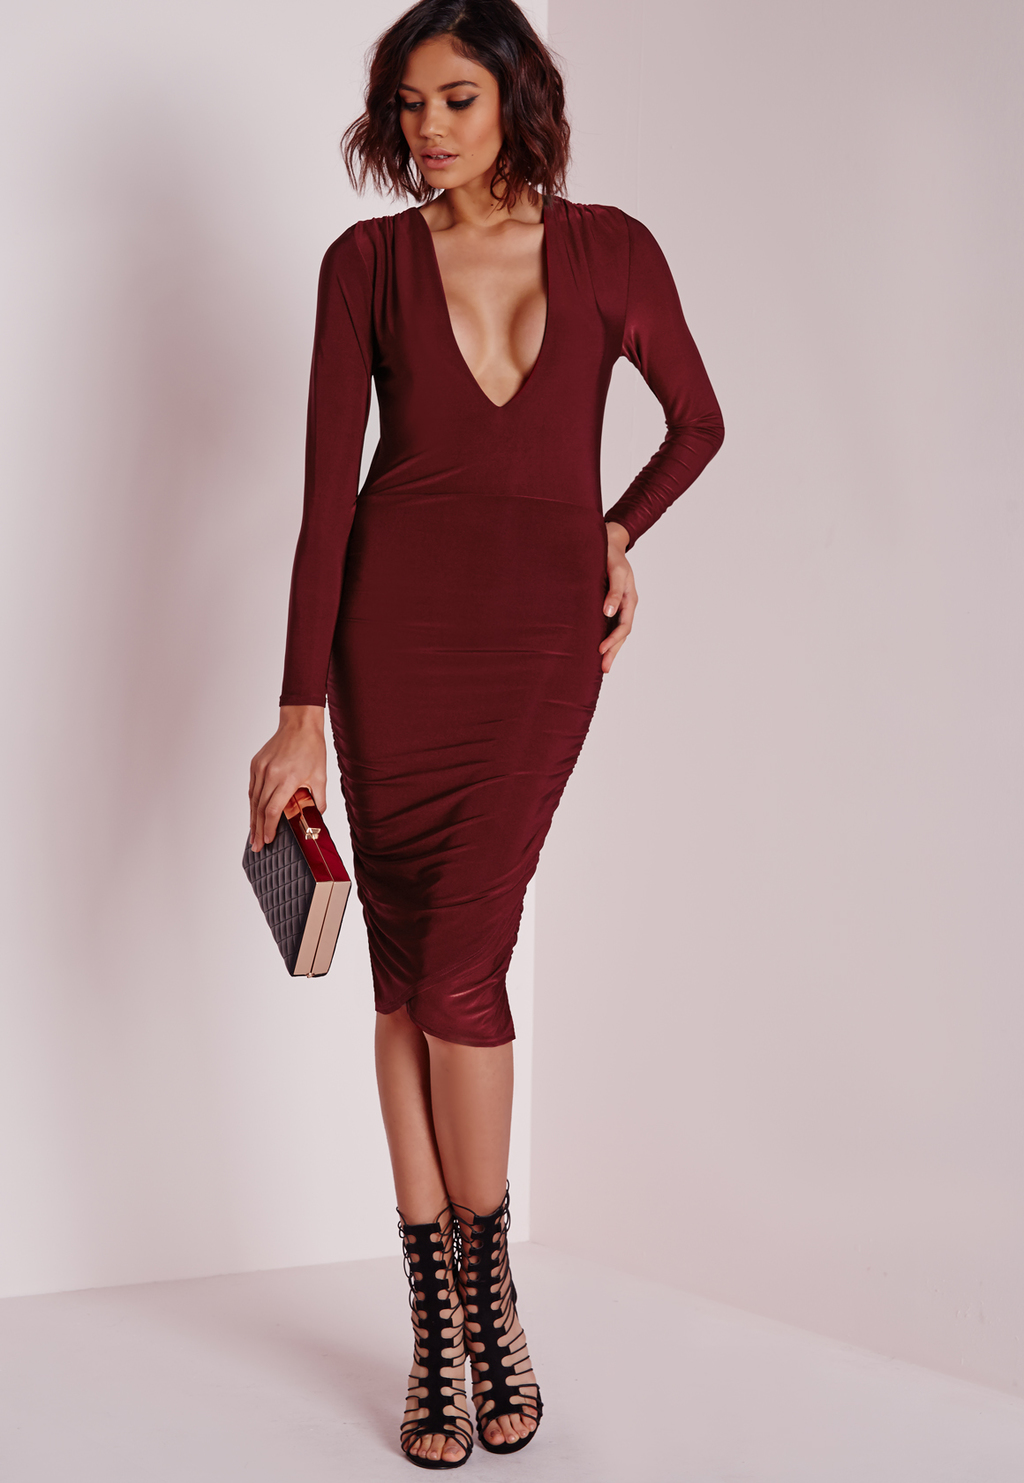 Slinky Plunge Long Sleeve Midi Dress Burgundy, Burgundy - length: below the knee; neckline: plunge; fit: tight; pattern: plain; style: bodycon; predominant colour: burgundy; occasions: evening; fibres: polyester/polyamide - stretch; sleeve length: long sleeve; sleeve style: standard; texture group: jersey - clingy; pattern type: fabric; season: a/w 2015